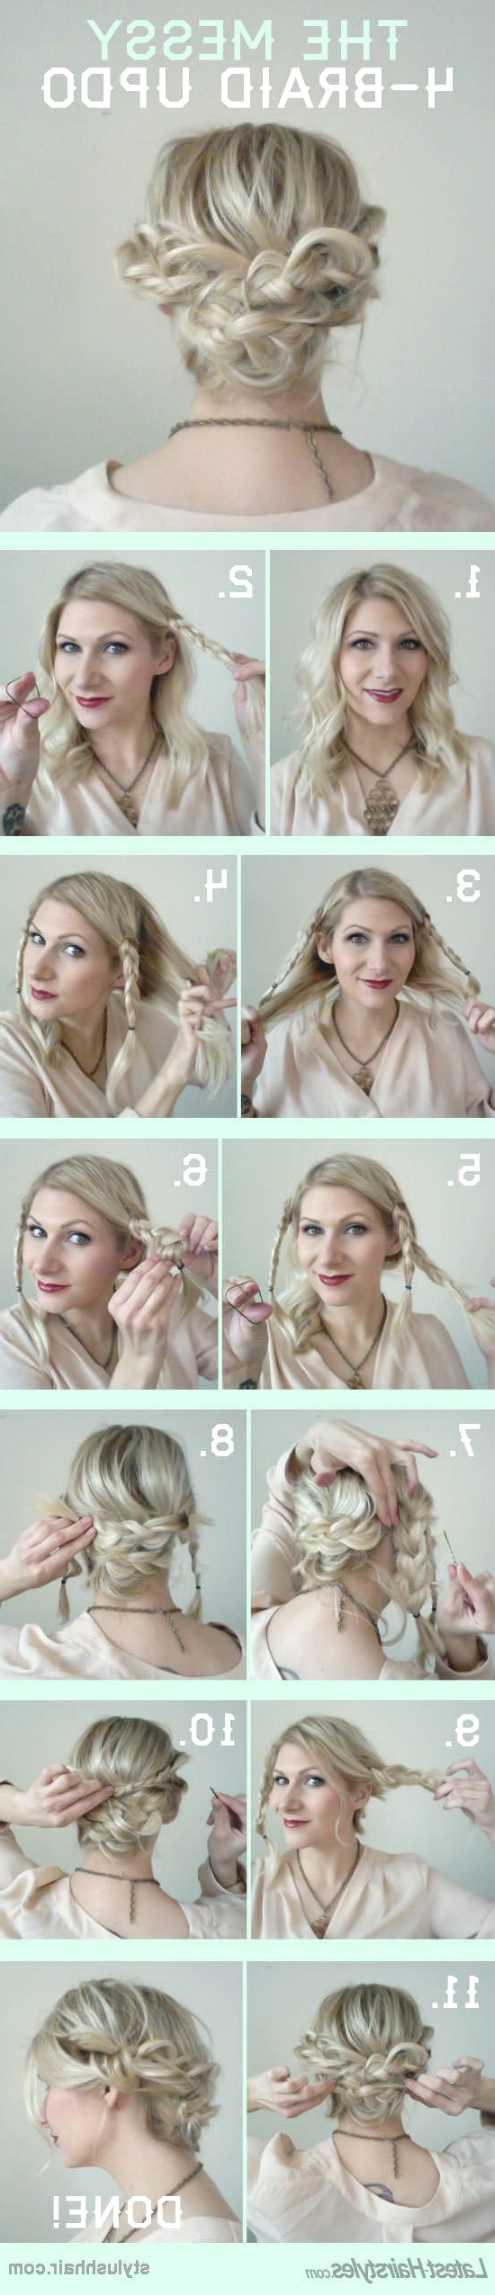 cute back to school hairstyles for shoulder length hair - http://www.gohairstyles.net/cute-back-to-school-hairstyles-for-shoulder-length-hair-3/